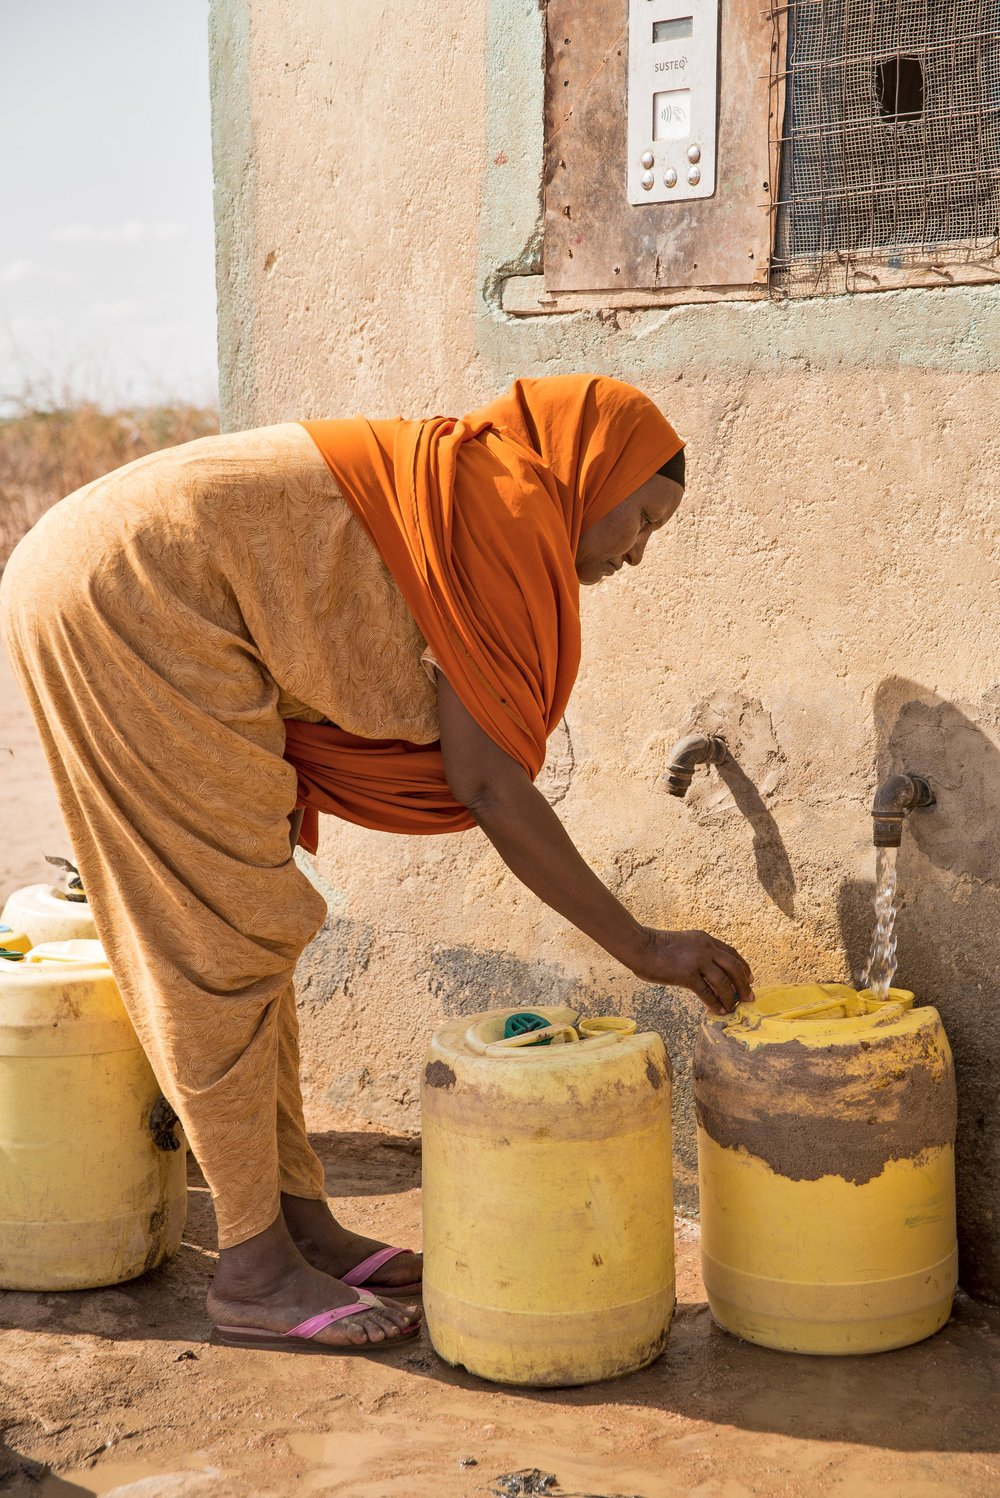 Bishara Abdiladir, 53,  collects water from a Water ATM in Hadado Town in Nothern Kenya. She said she typically makes four trips to the Water ATM everyday.